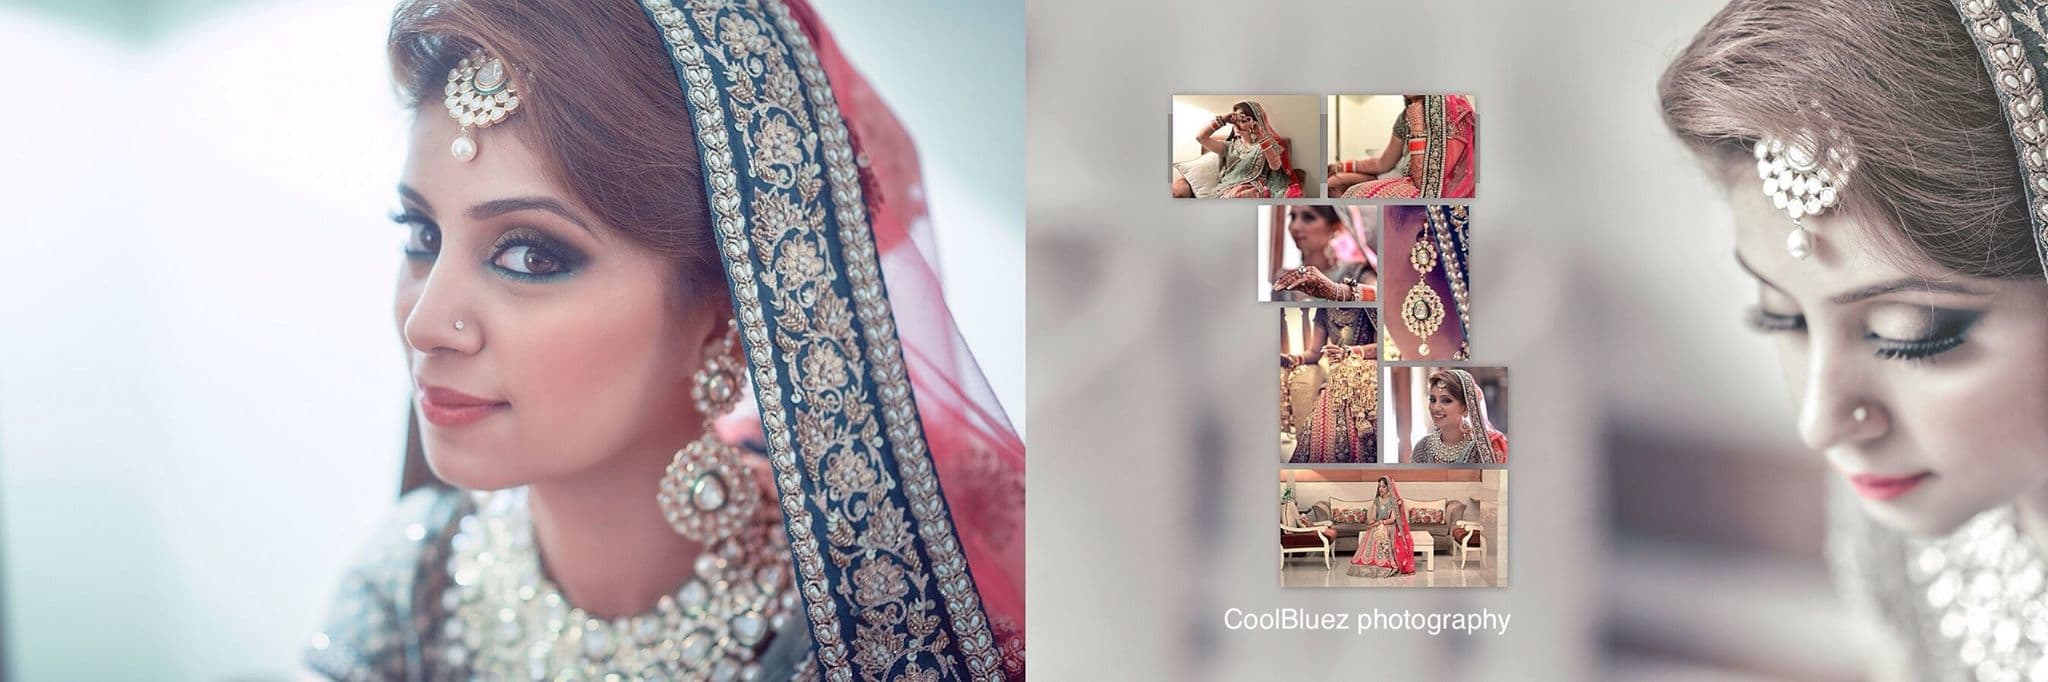 bridal photography:coolbluez photography